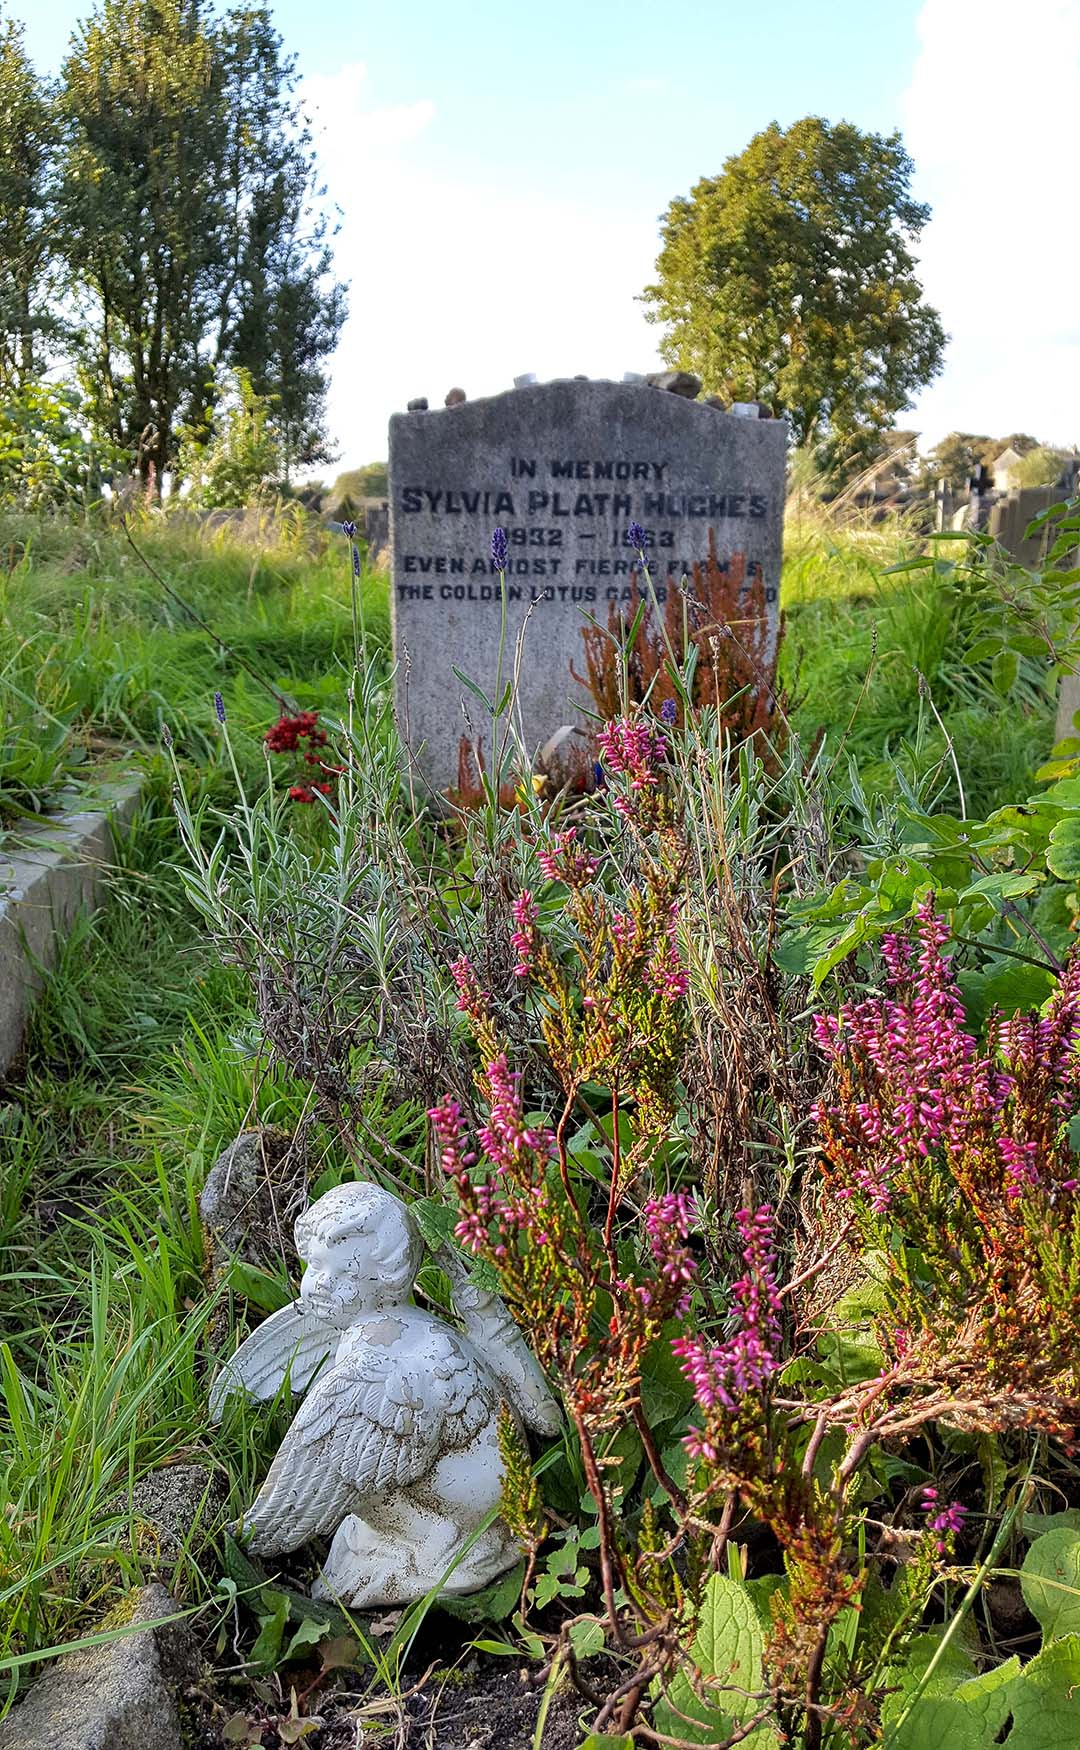 Flowers at Sylvia Plath's grave, Heptonstall